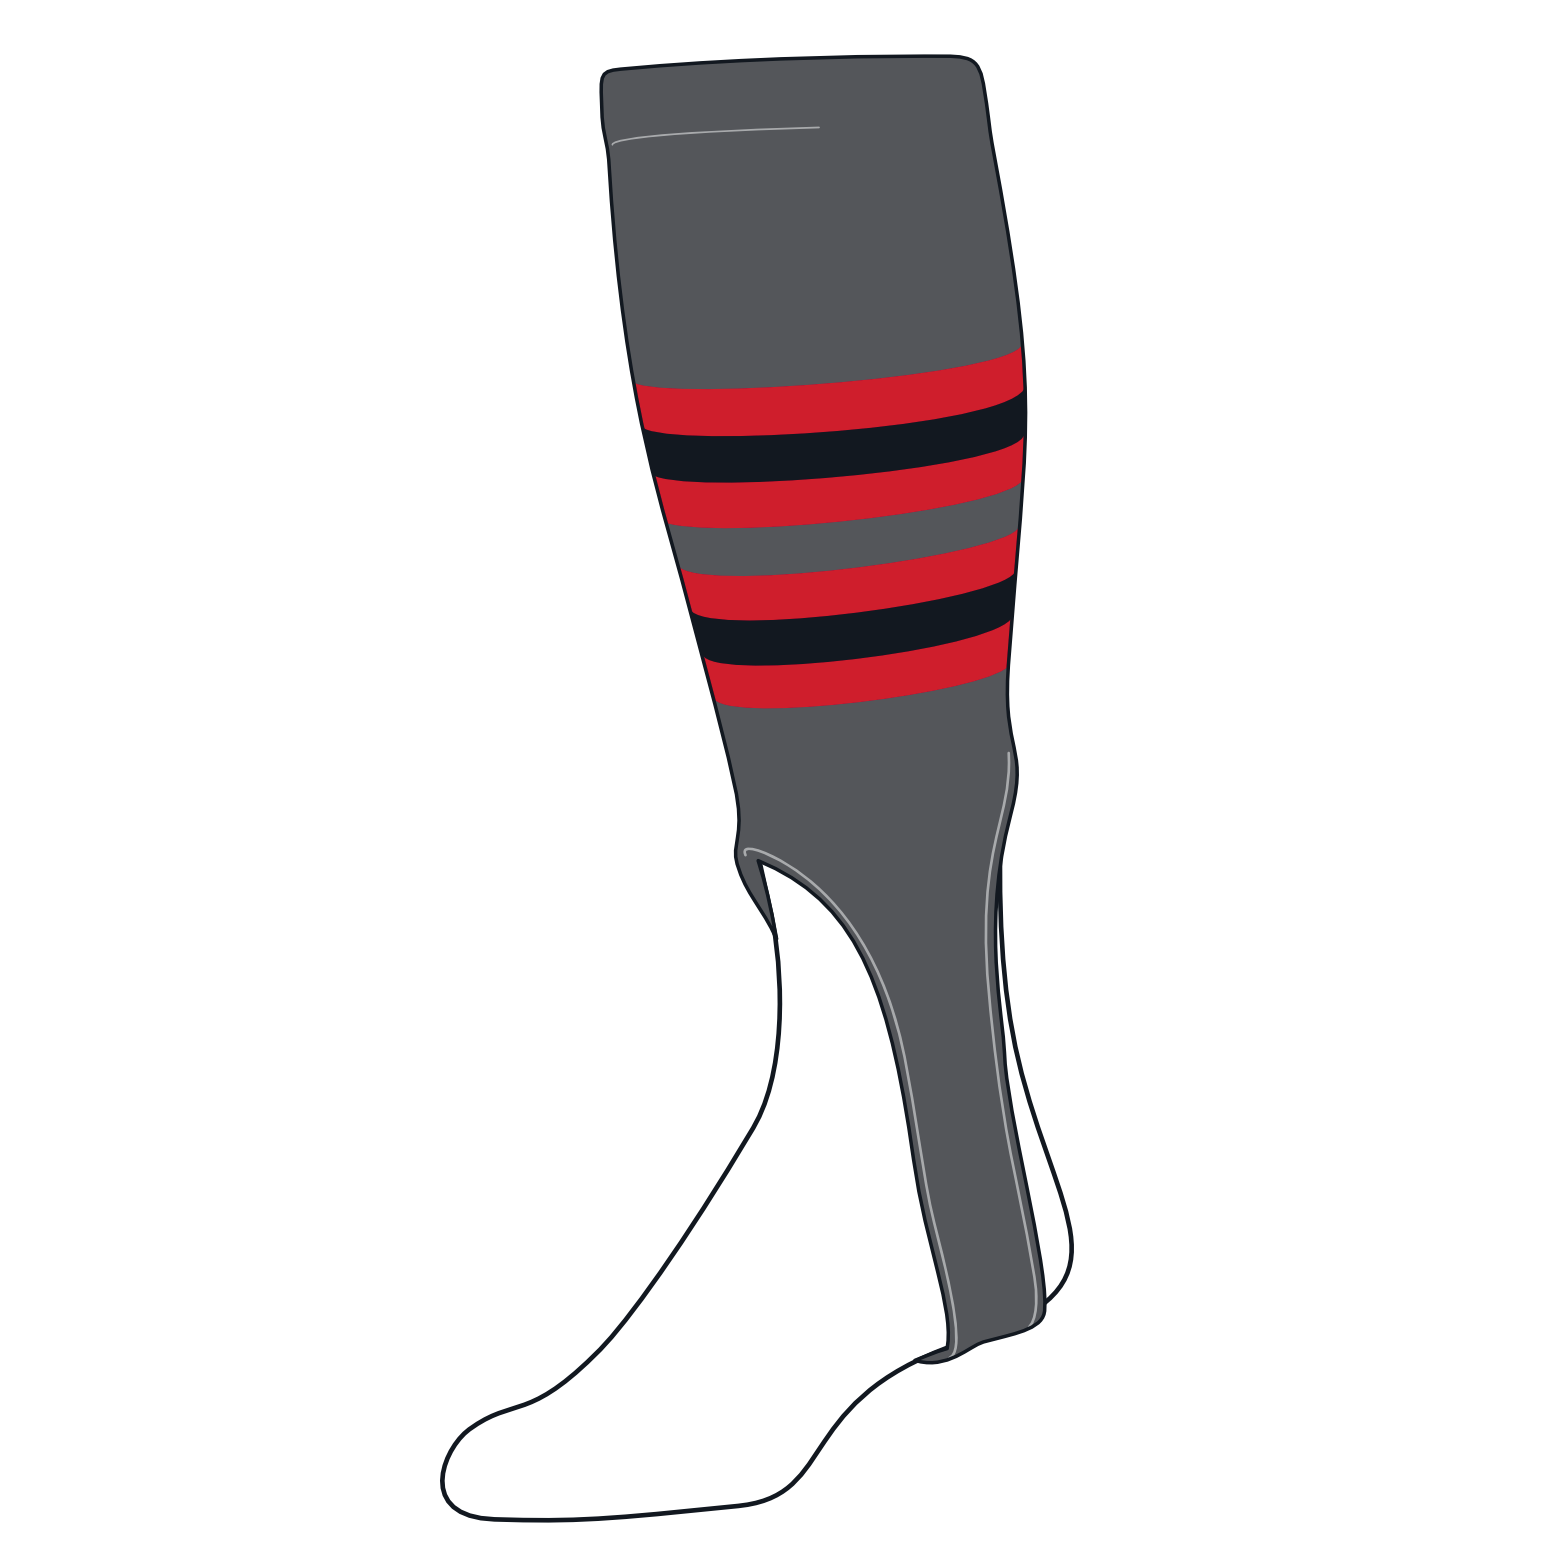 TCK Baseball Stirrups Medium (200I, 7in) Graphite, Red, Black